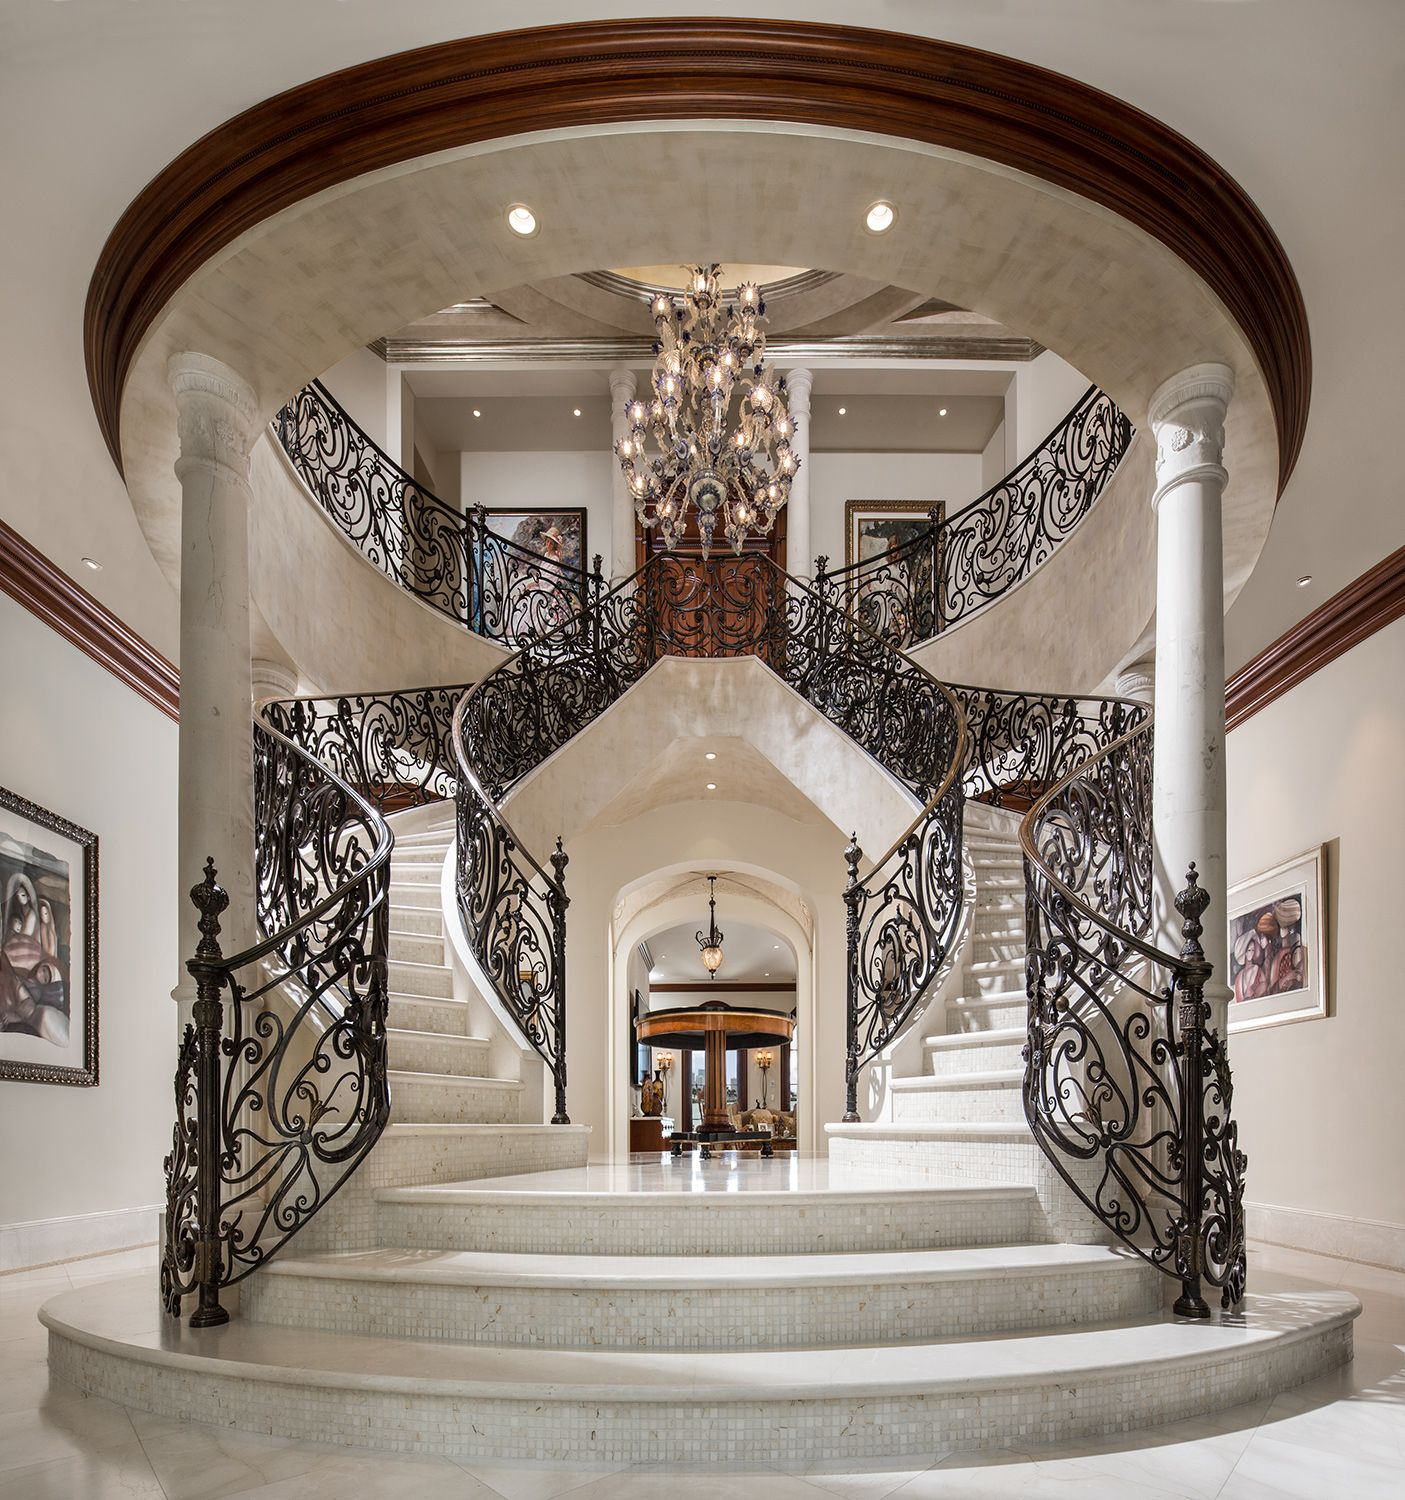 Stair Design Budget And Important Things To Consider: Staircase Design, Double Staircase